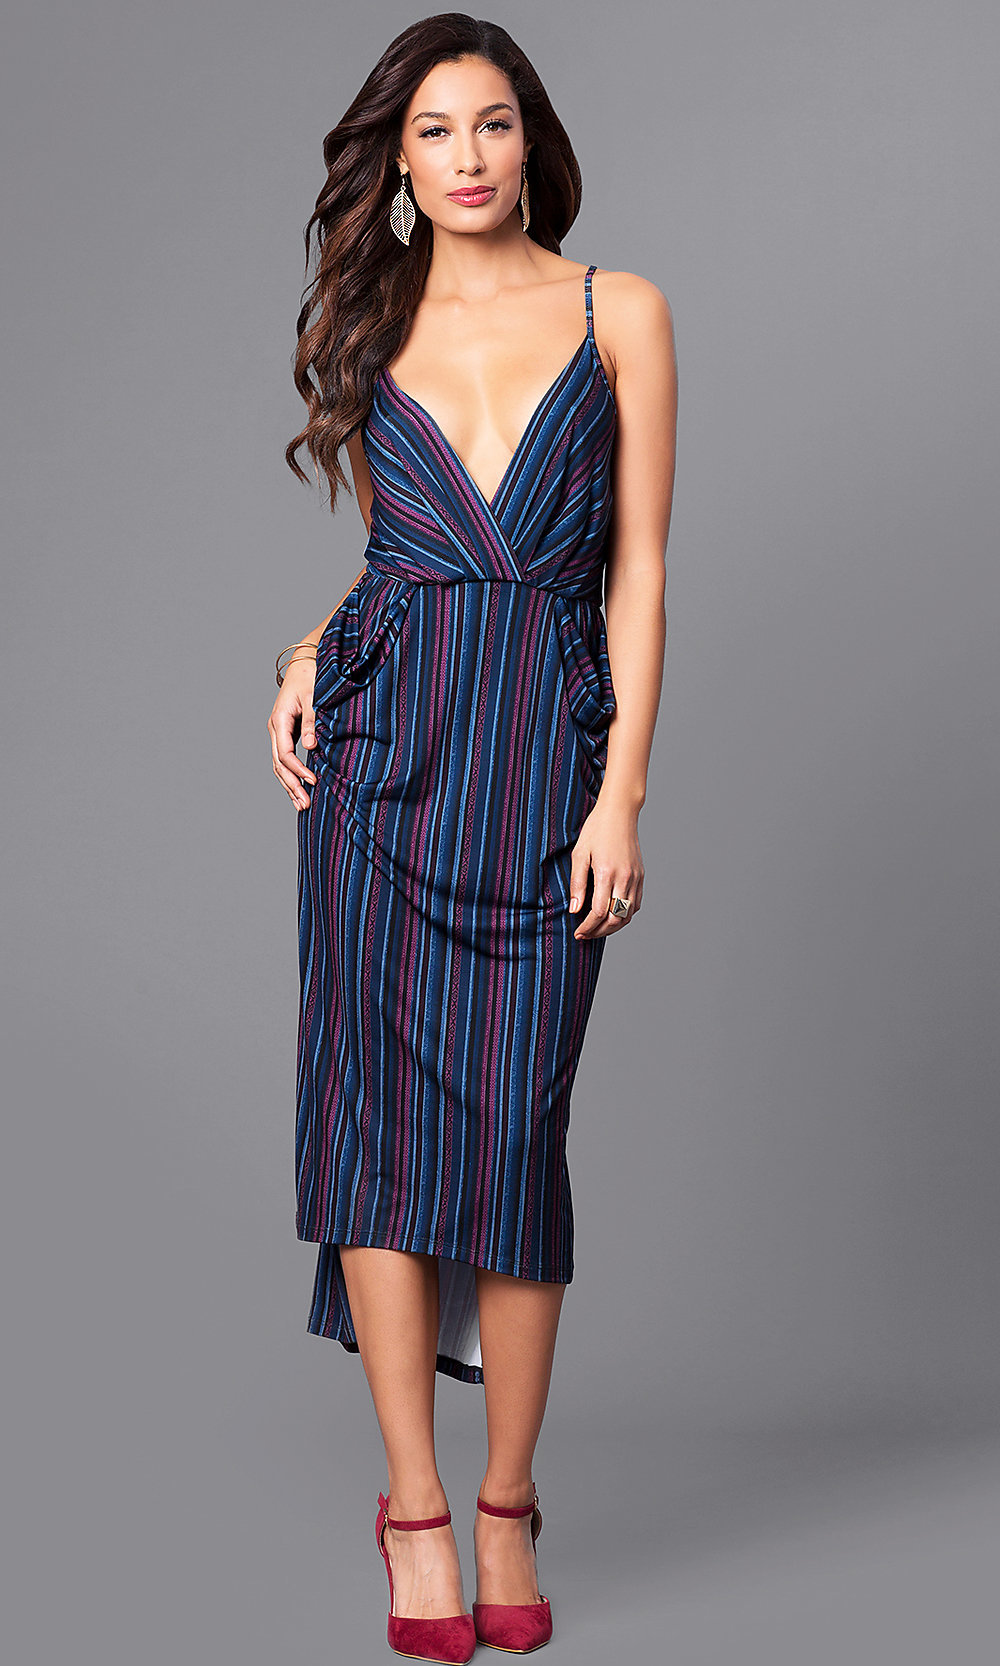 1fdcd585a51 V-Neck Striped Short High-Low Casual Party Dress